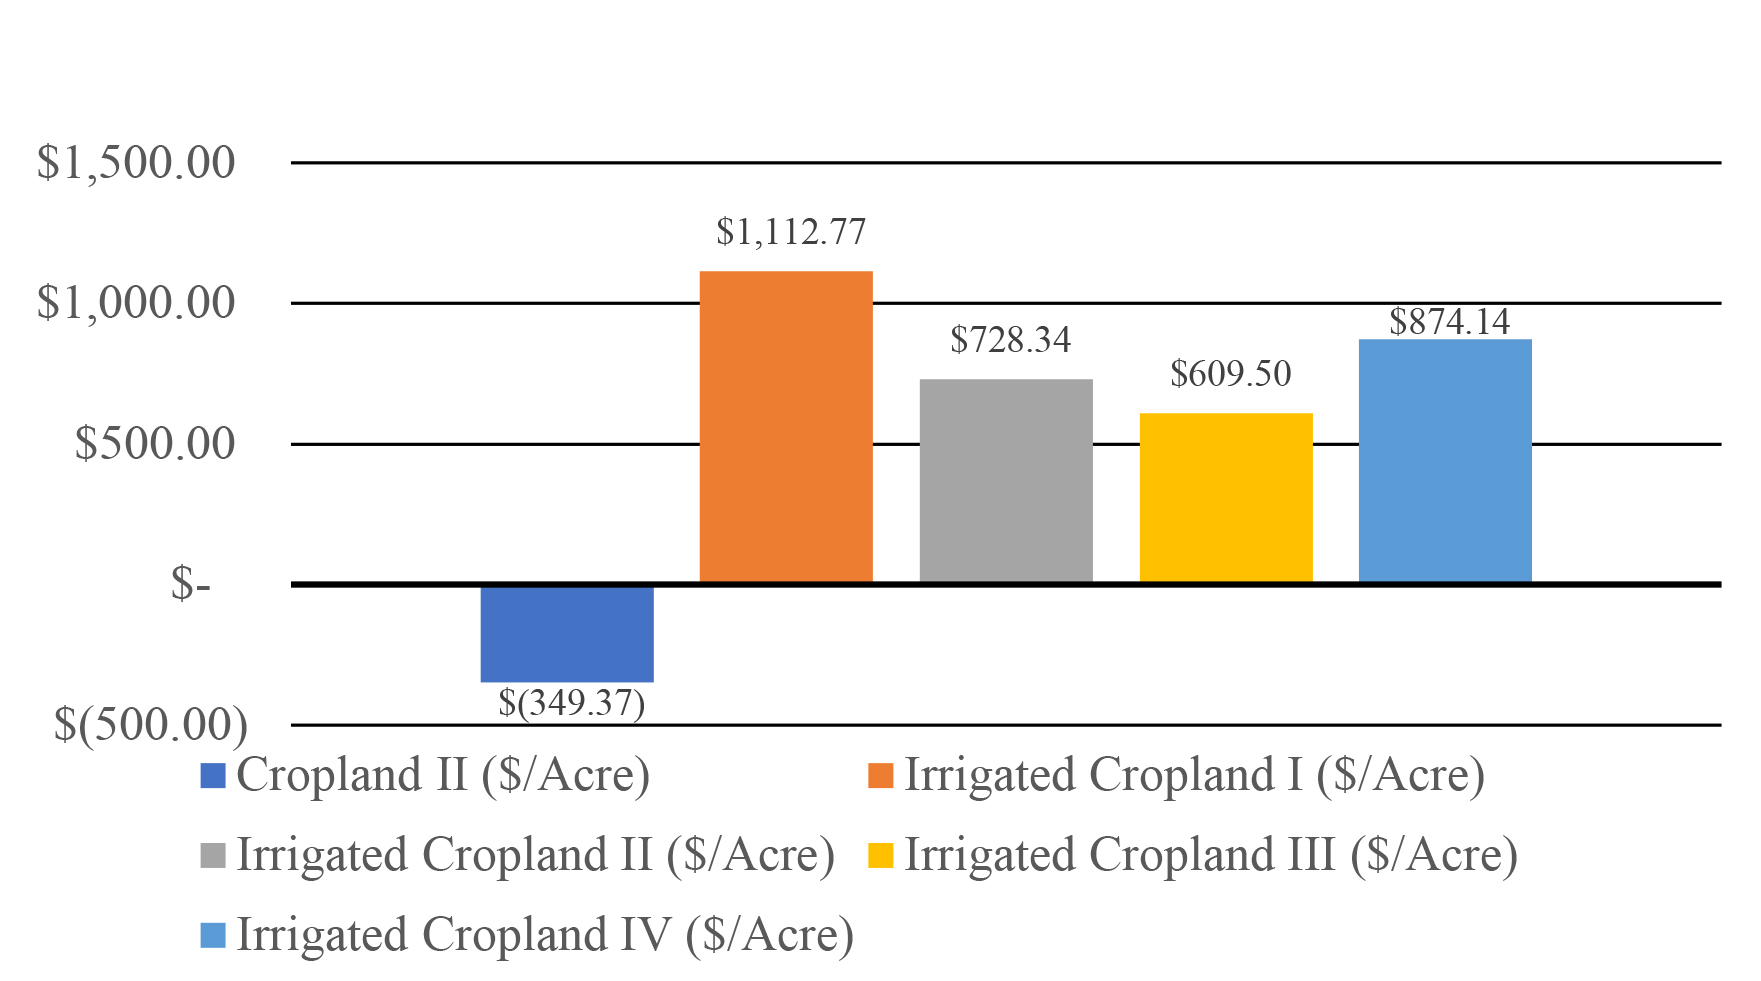 Cropland type results description in text.